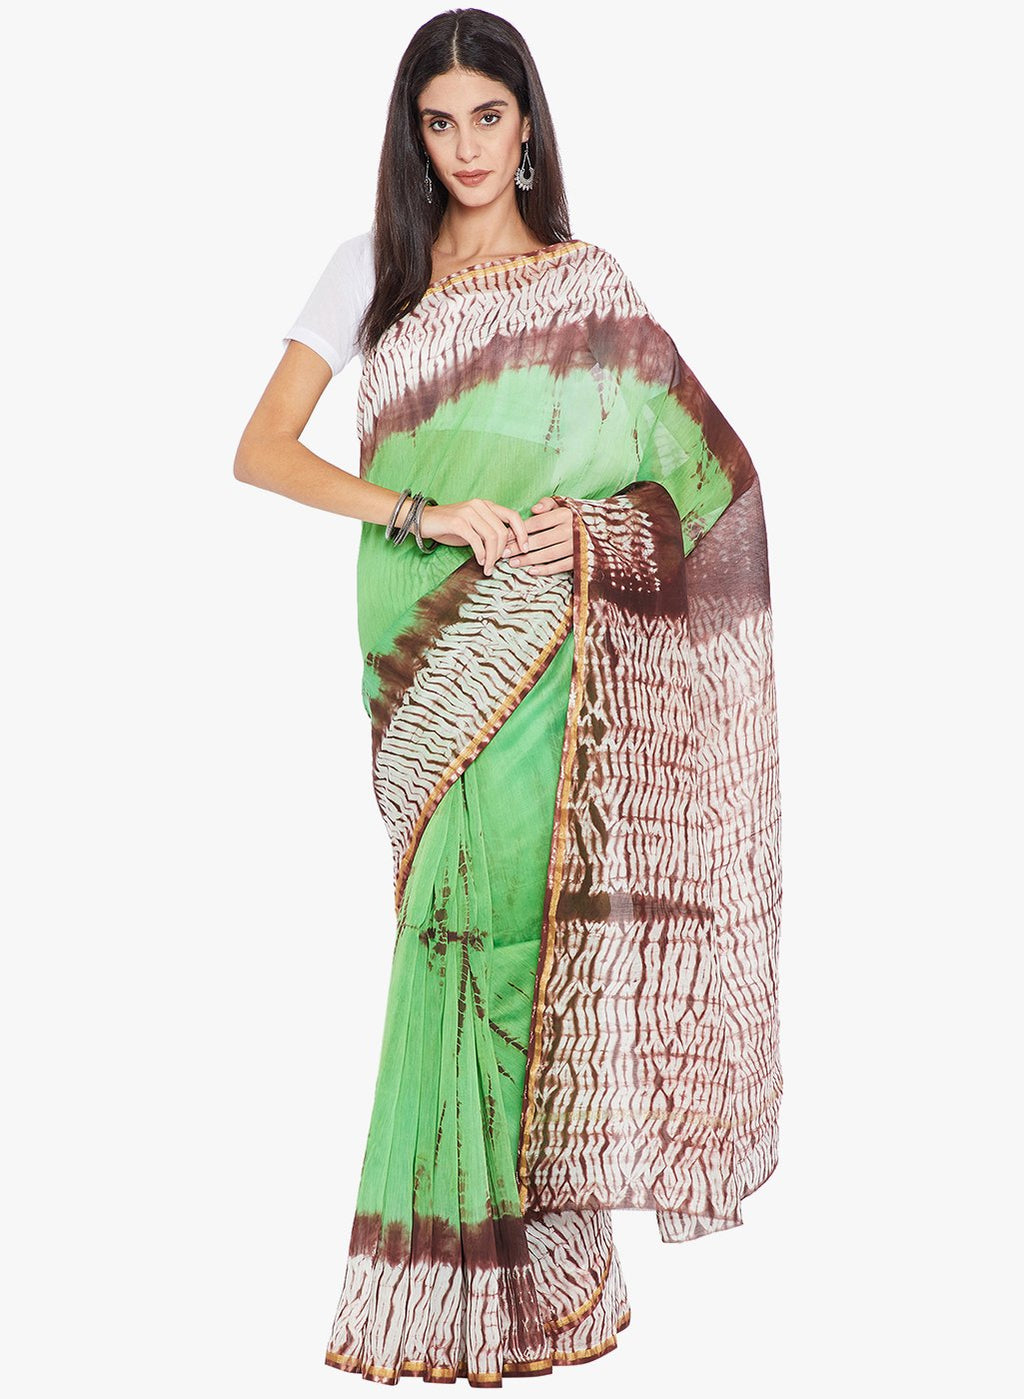 Green & Burgundy Chanderi Silk Shibori Hand Dyed Handcrafted Saree-Saree-Kalakari India-RDSNSA0135-Chanderi, Geographical Indication, Hand Blocks, Hand Crafted, Heritage Prints, Sarees, Shibori, Silk, Sustainable Fabrics-[Linen,Ethnic,wear,Fashionista,Handloom,Handicraft,Indigo,blockprint,block,print,Cotton,Chanderi,Blue, latest,classy,party,bollywood,trendy,summer,style,traditional,formal,elegant,unique,style,hand,block,print, dabu,booti,gift,present,glamorous,affordable,collectible,Sari,Saree,